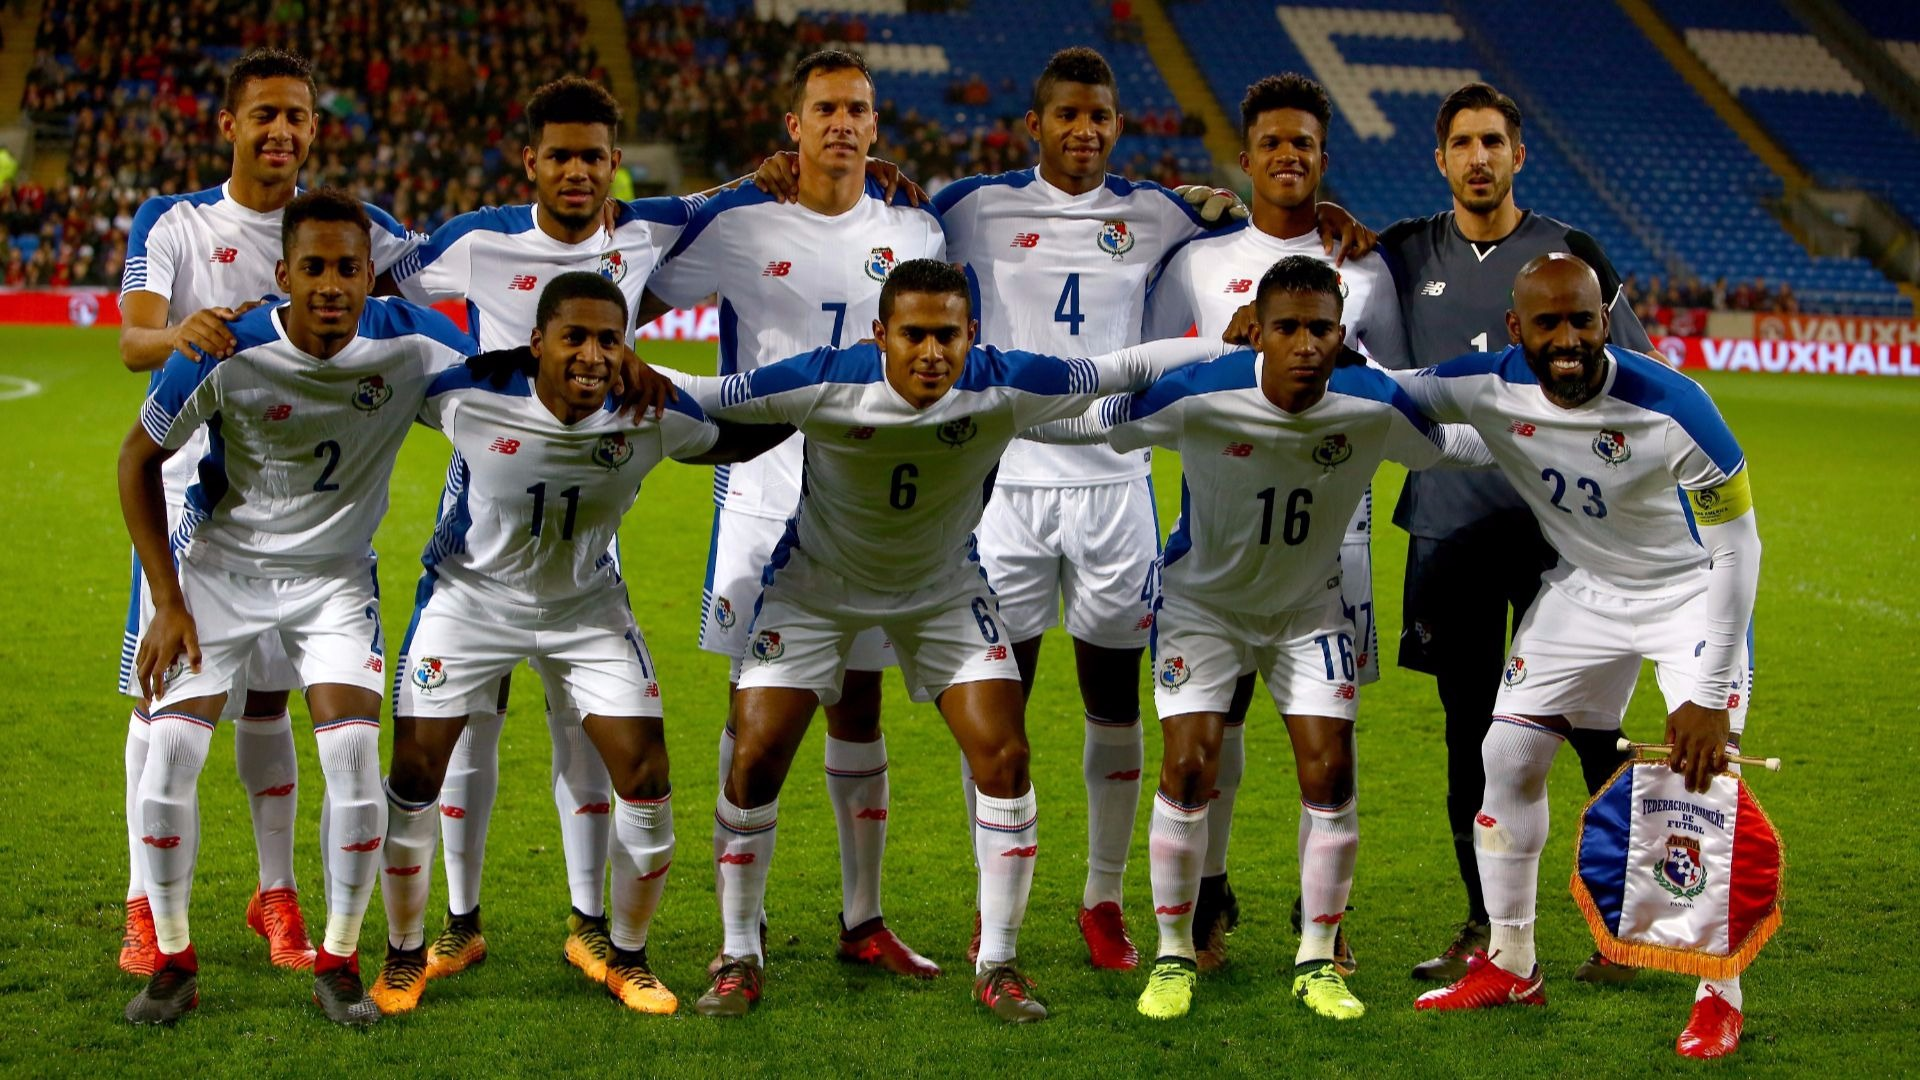 The Panama national football team.